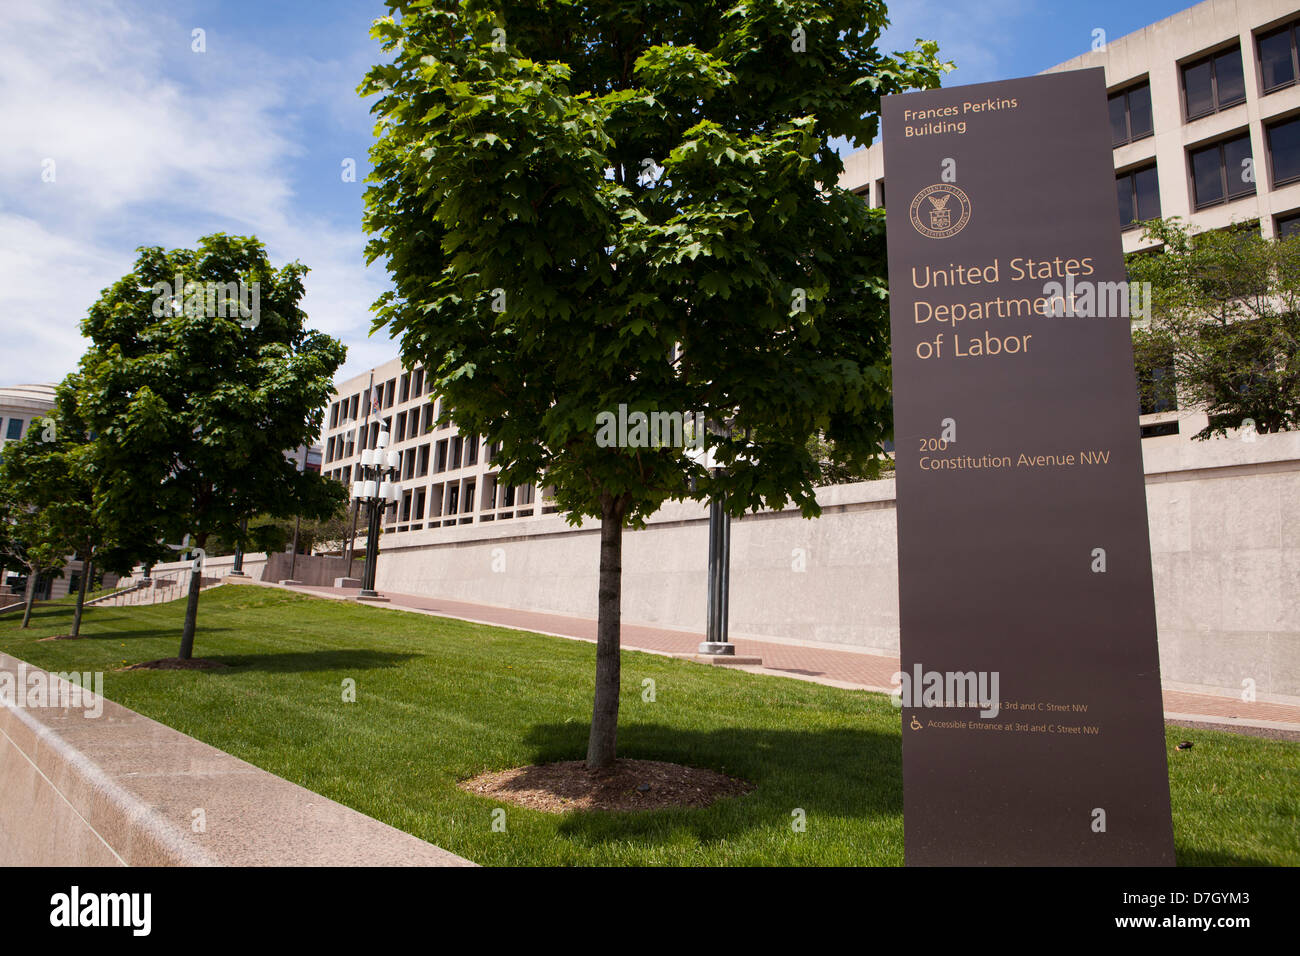 US Department of Labor headquarters building - Washington, DC USA - Stock Image